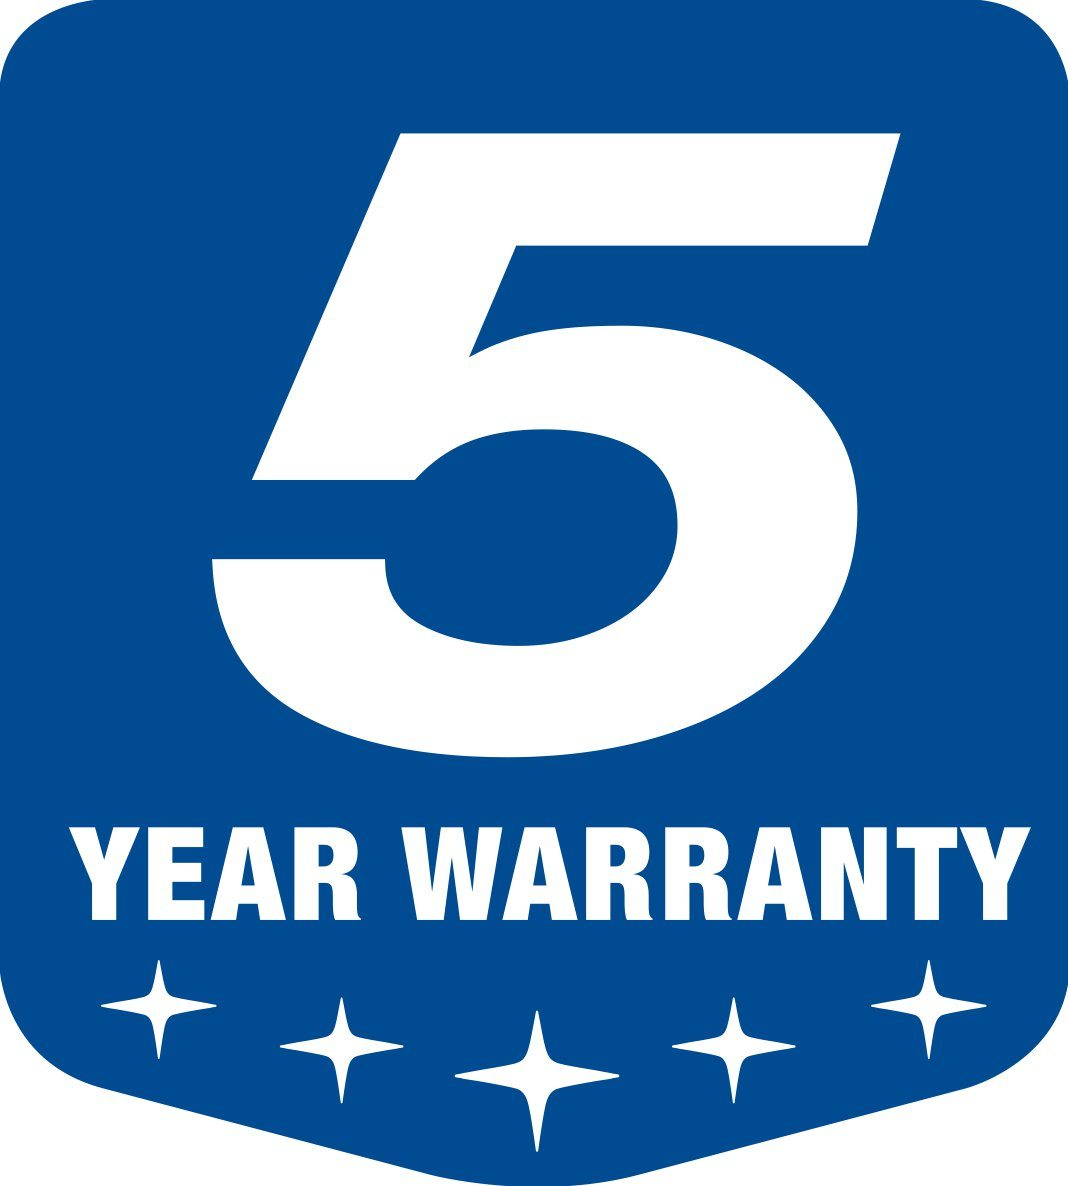 Subaru 5 year Warranty logo